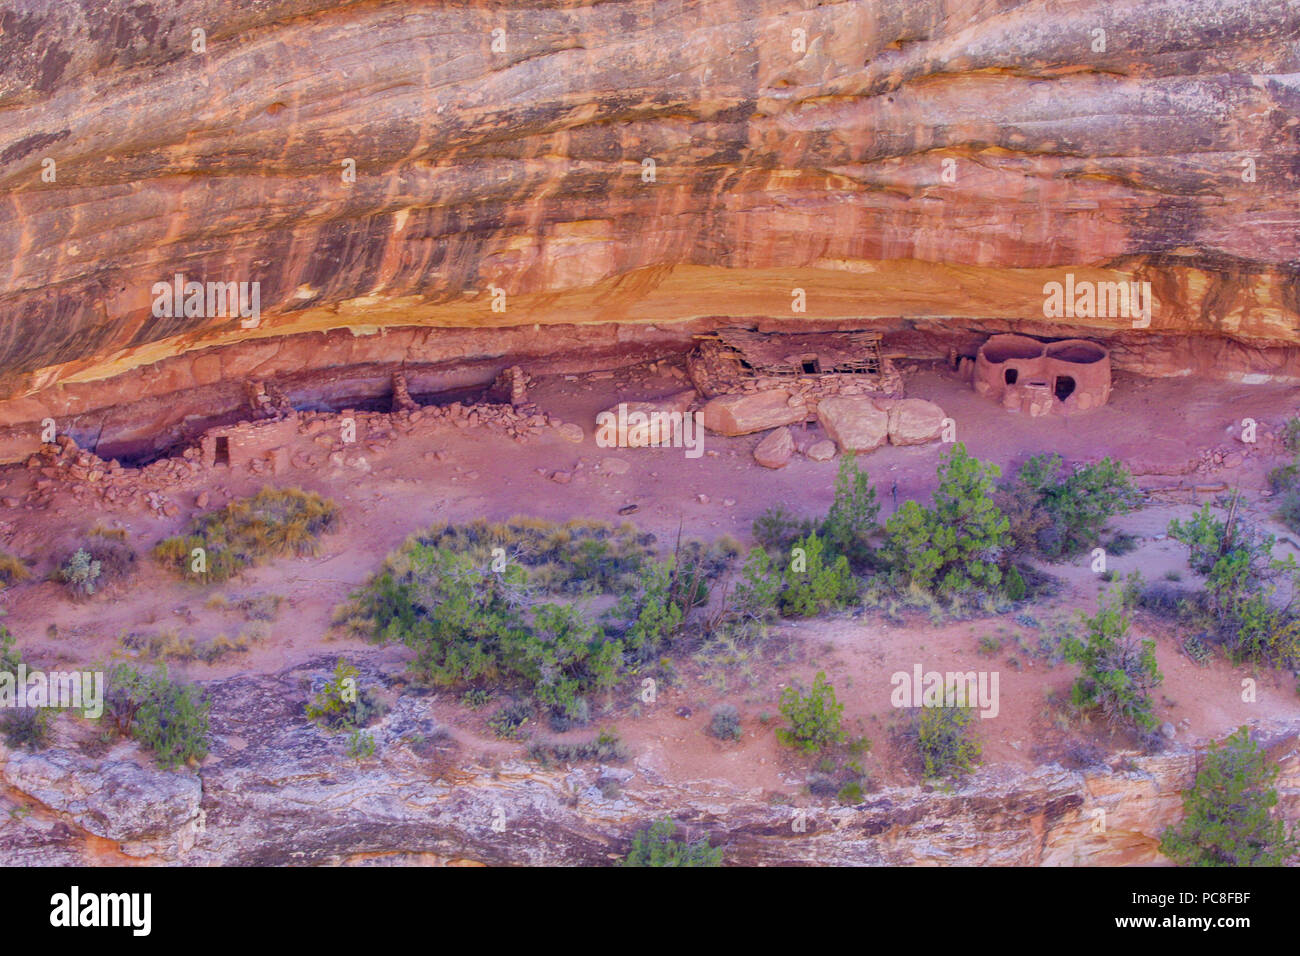 Ancient native american dwellings carved into a rock wall - Stock Image